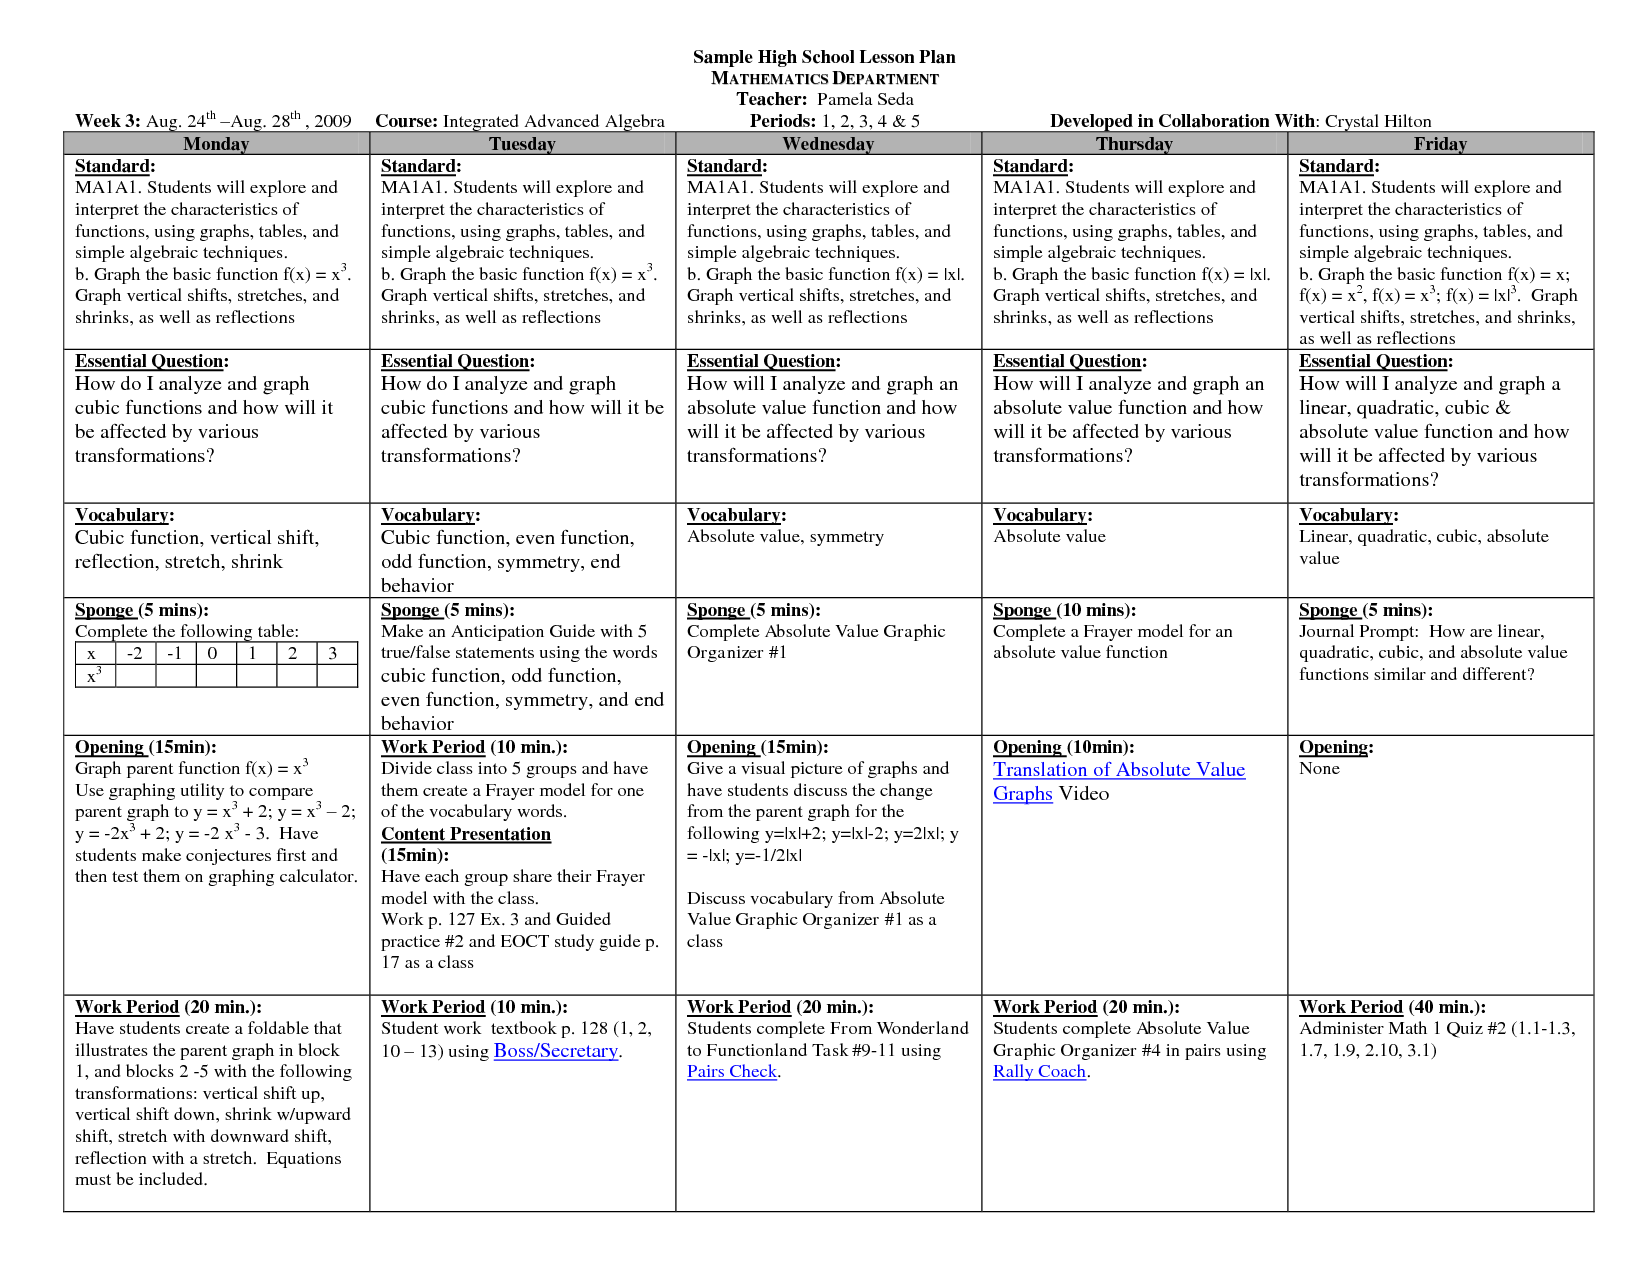 teachers college lesson plan template - math lesson plan template high schoolsample hs math weekly